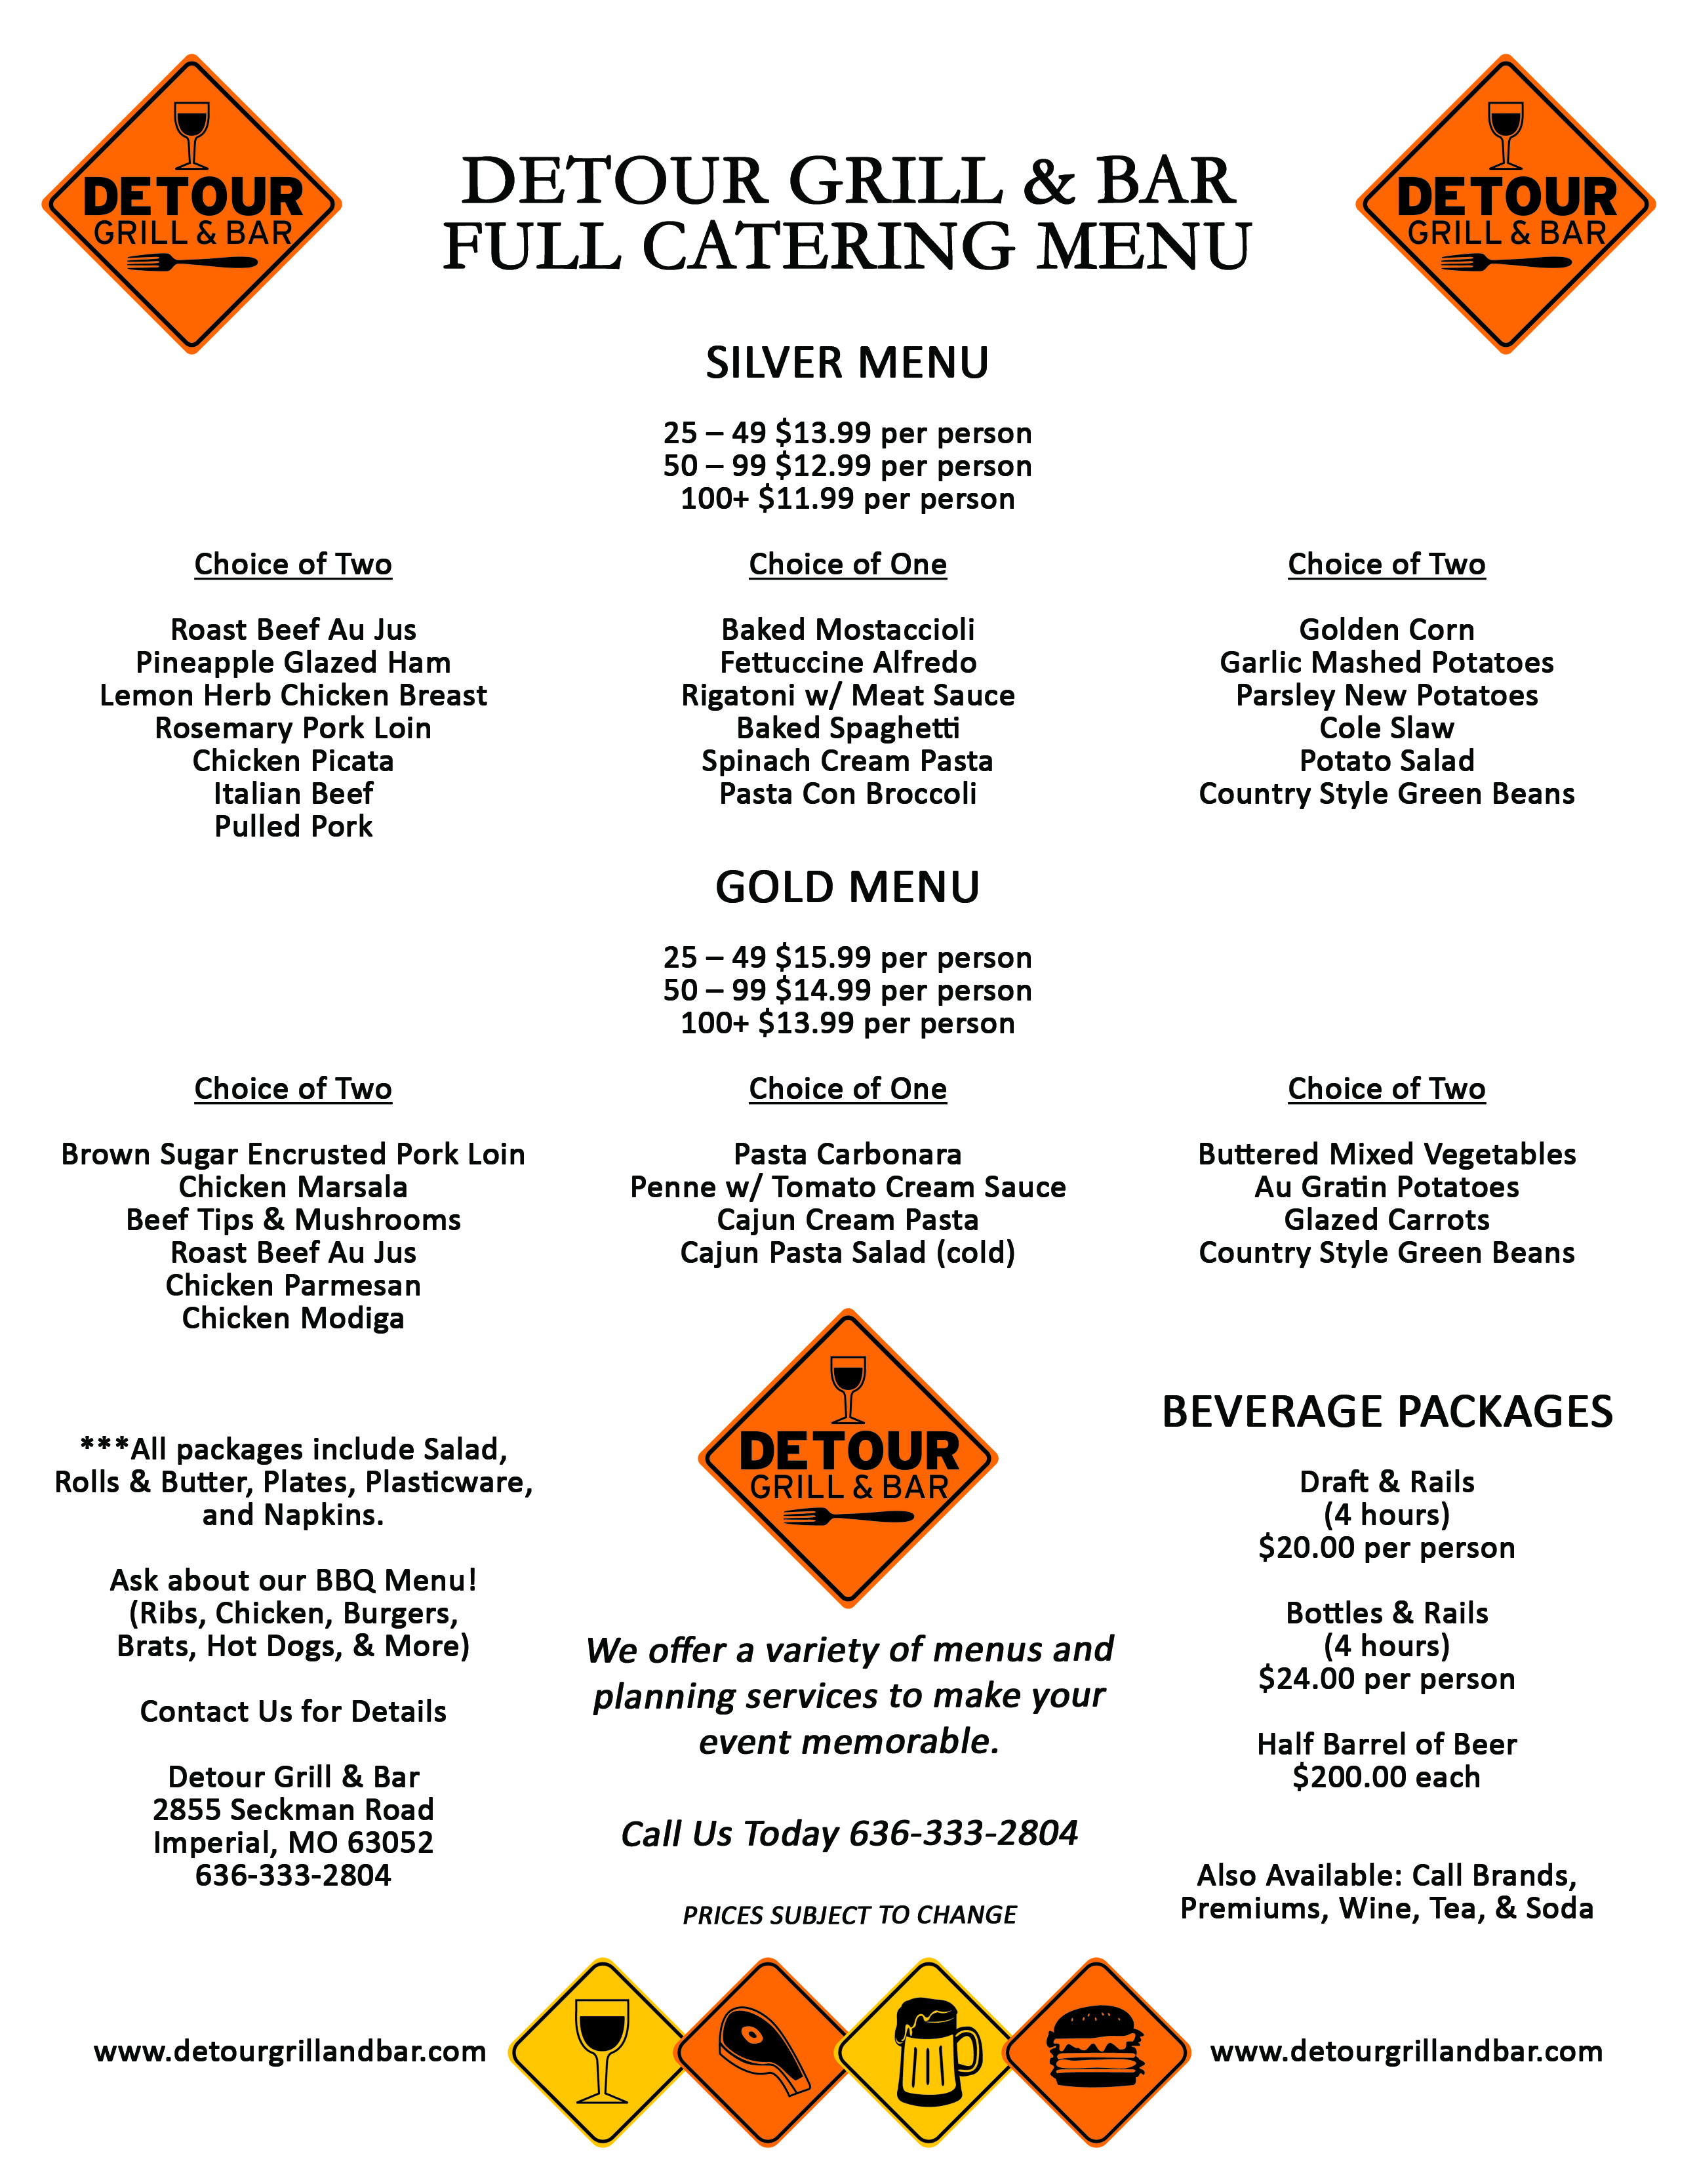 Detour Grill and Bar Full Catering Menu